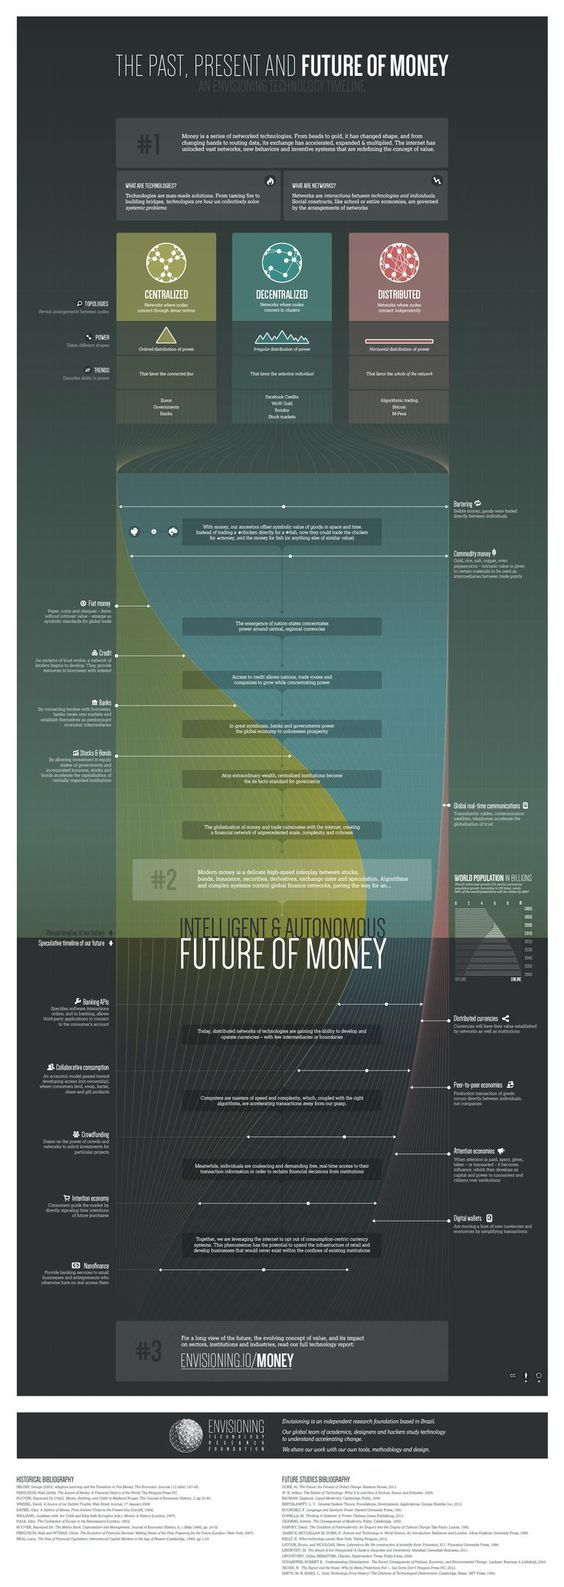 Past, present and future of money: